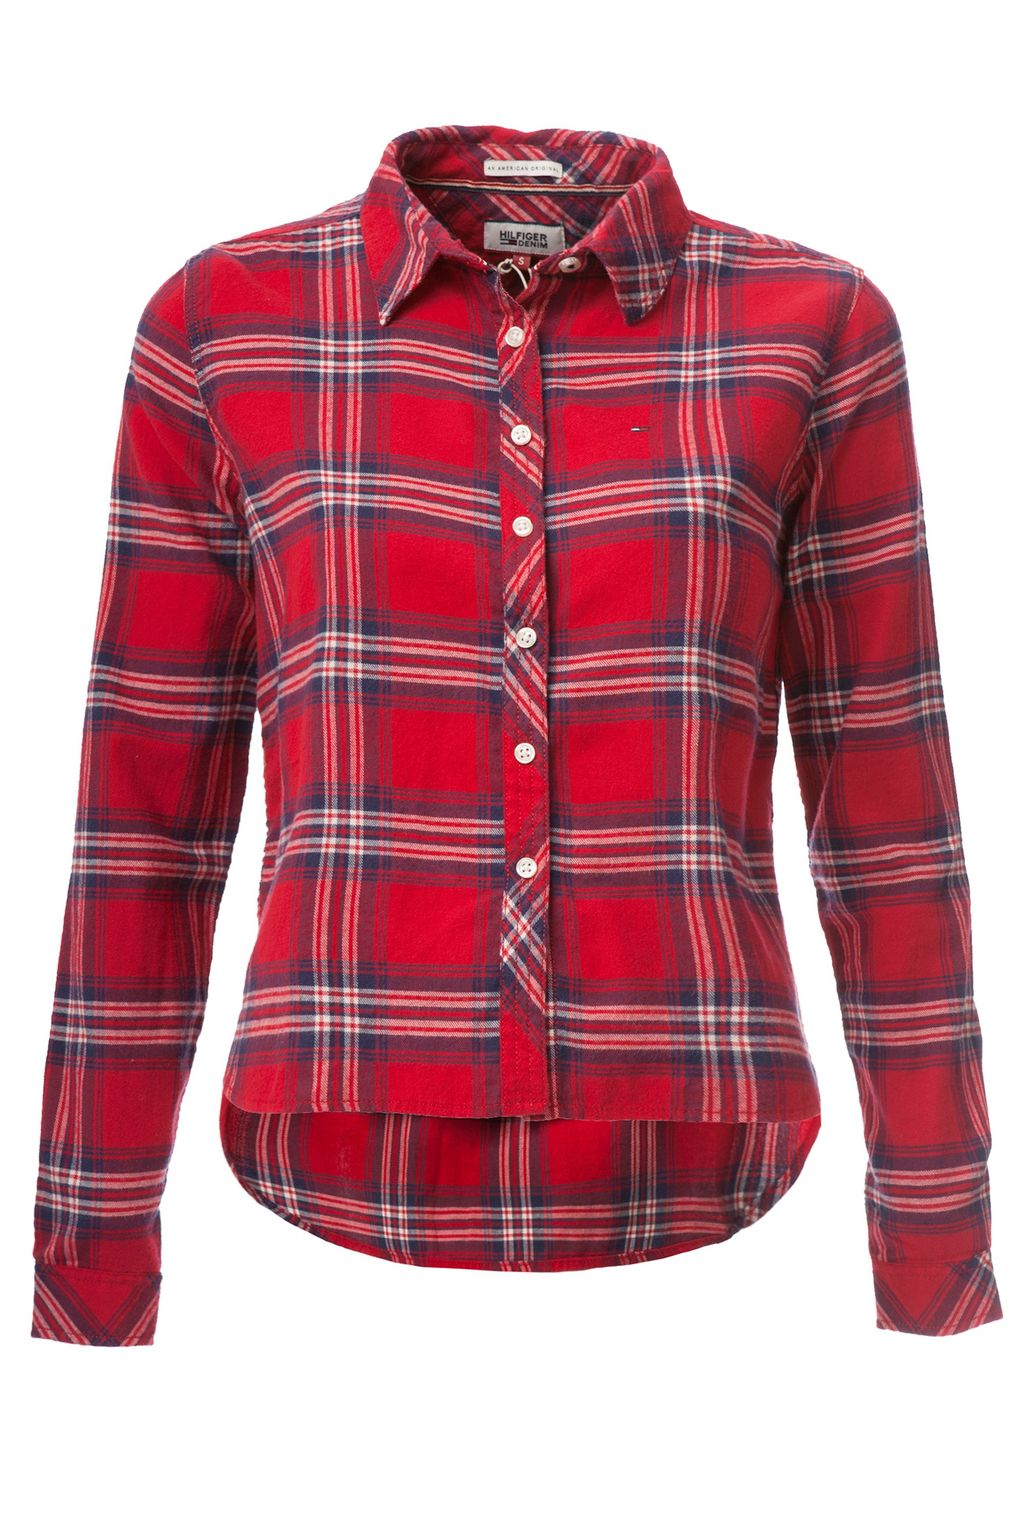 Thdw Basic Flannel Check Shirt, Red - neckline: shirt collar/peter pan/zip with opening; pattern: checked/gingham; length: below the bottom; style: shirt; predominant colour: true red; secondary colour: navy; occasions: casual, creative work; fibres: cotton - 100%; fit: straight cut; sleeve length: long sleeve; sleeve style: standard; texture group: cotton feel fabrics; pattern type: fabric; multicoloured: multicoloured; season: a/w 2016; wardrobe: highlight